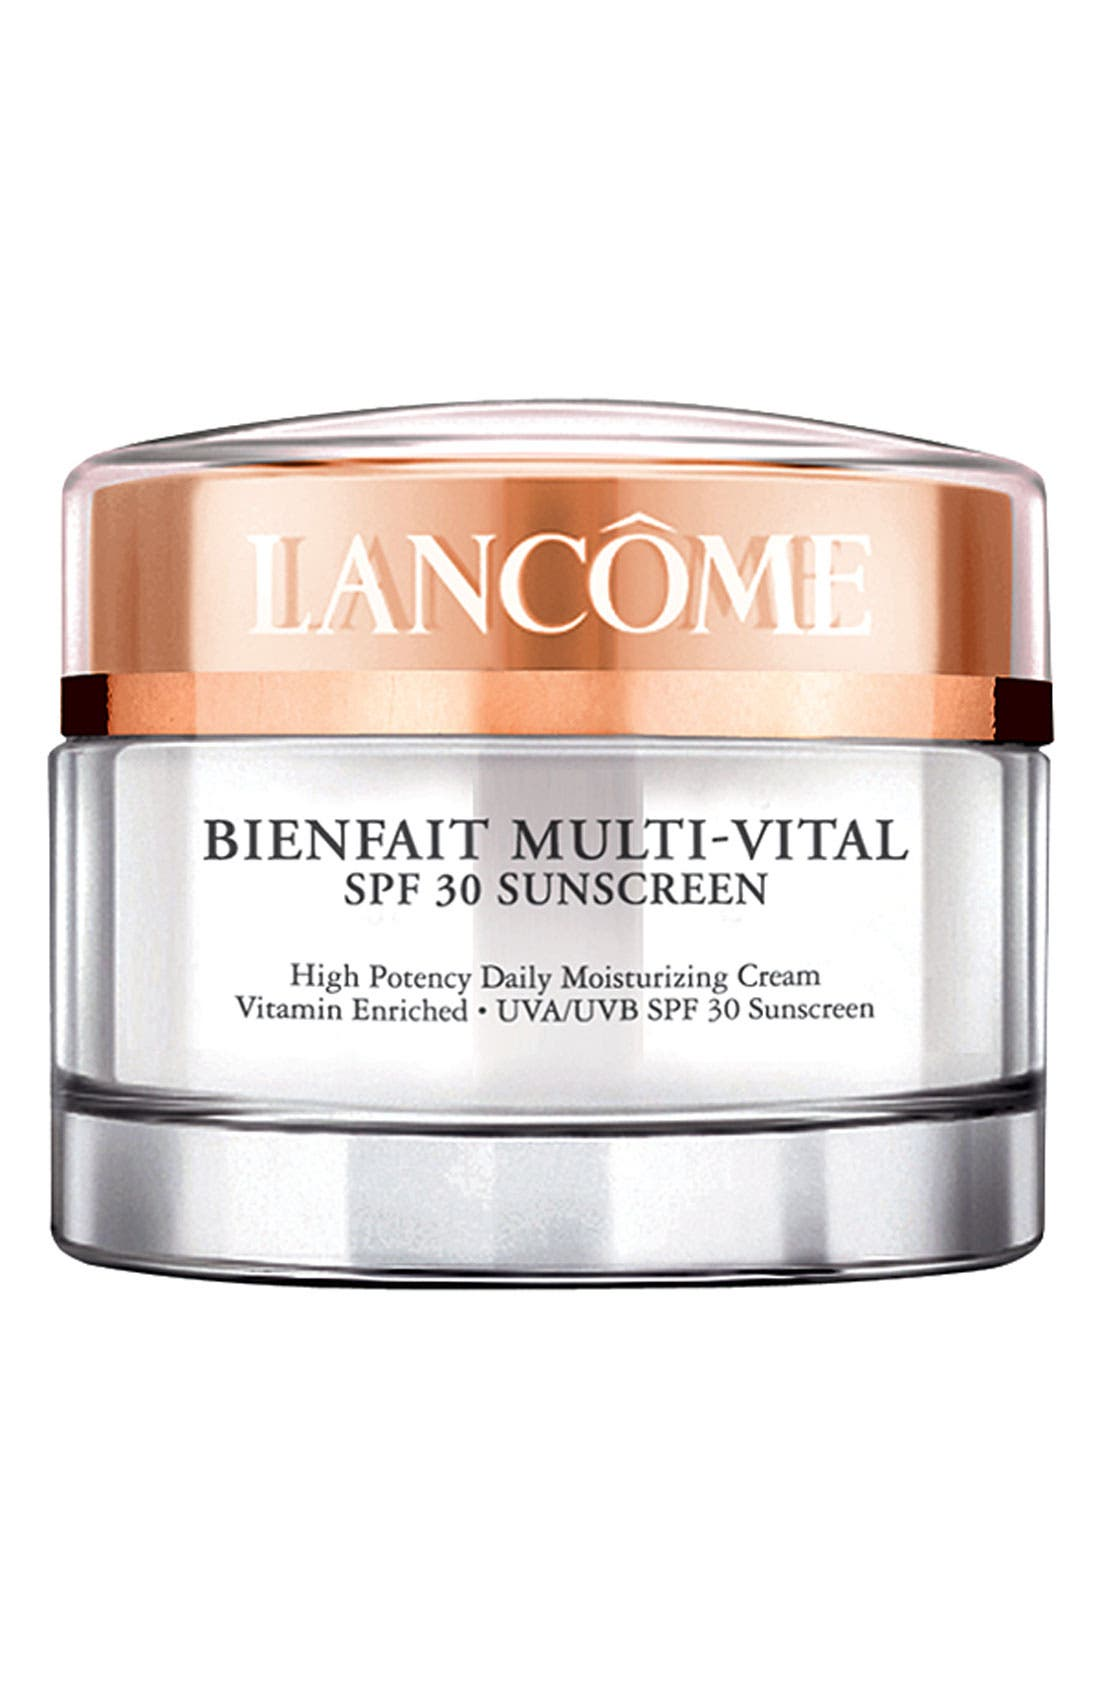 Lancôme Bienfait Multi-Vital SPF 30 Sunscreen Cream